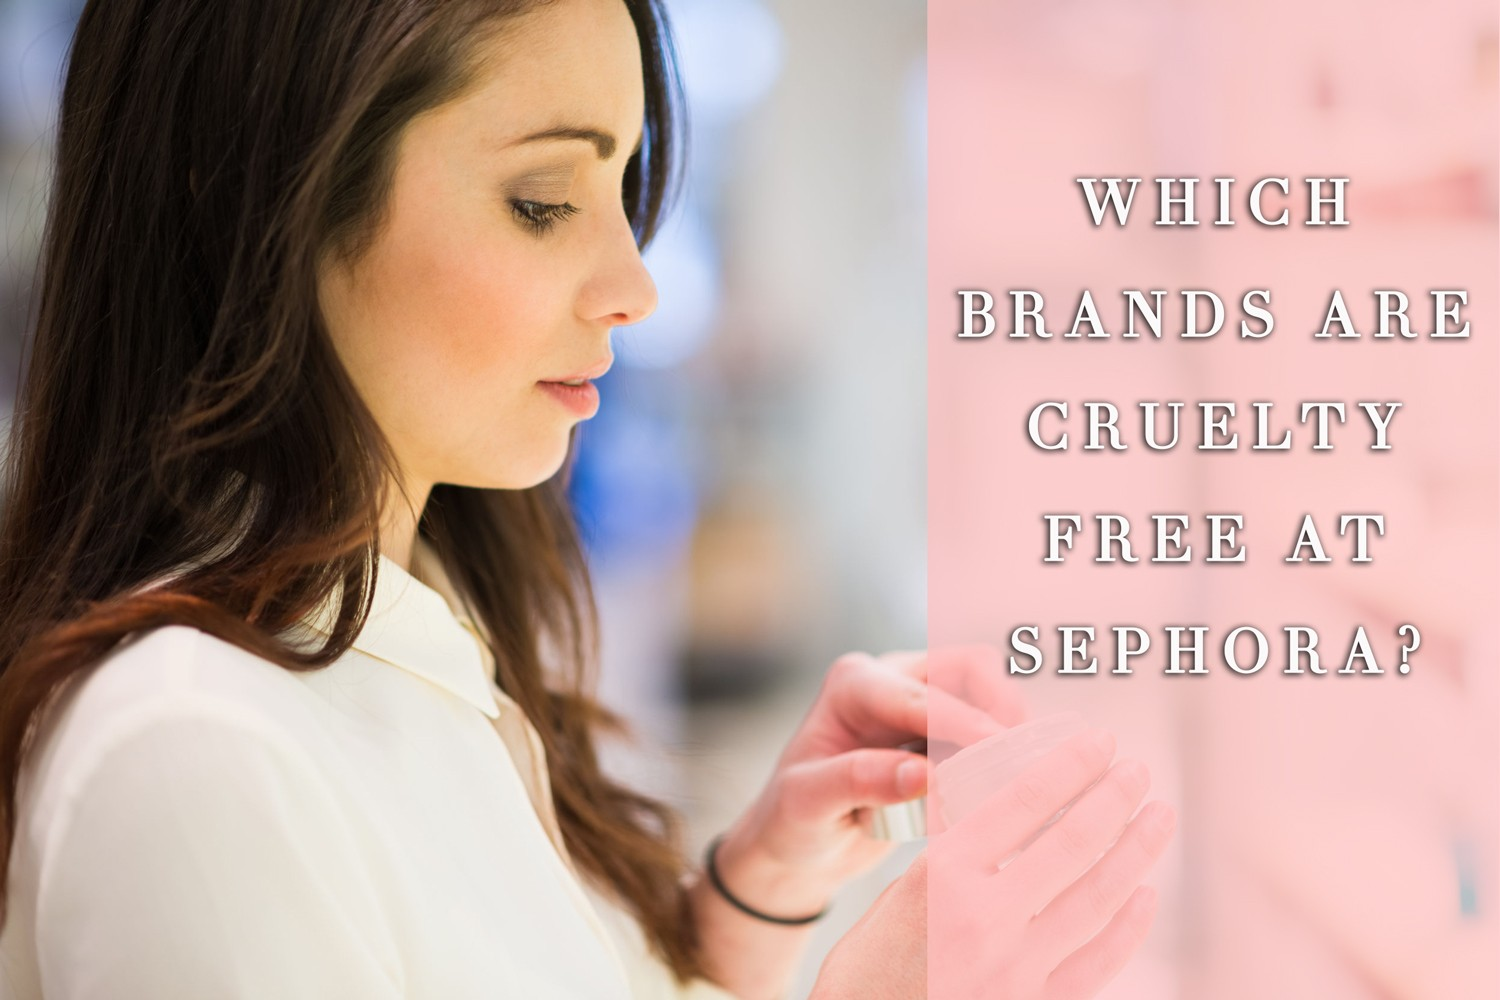 Which brands are cruelty free at Sephora